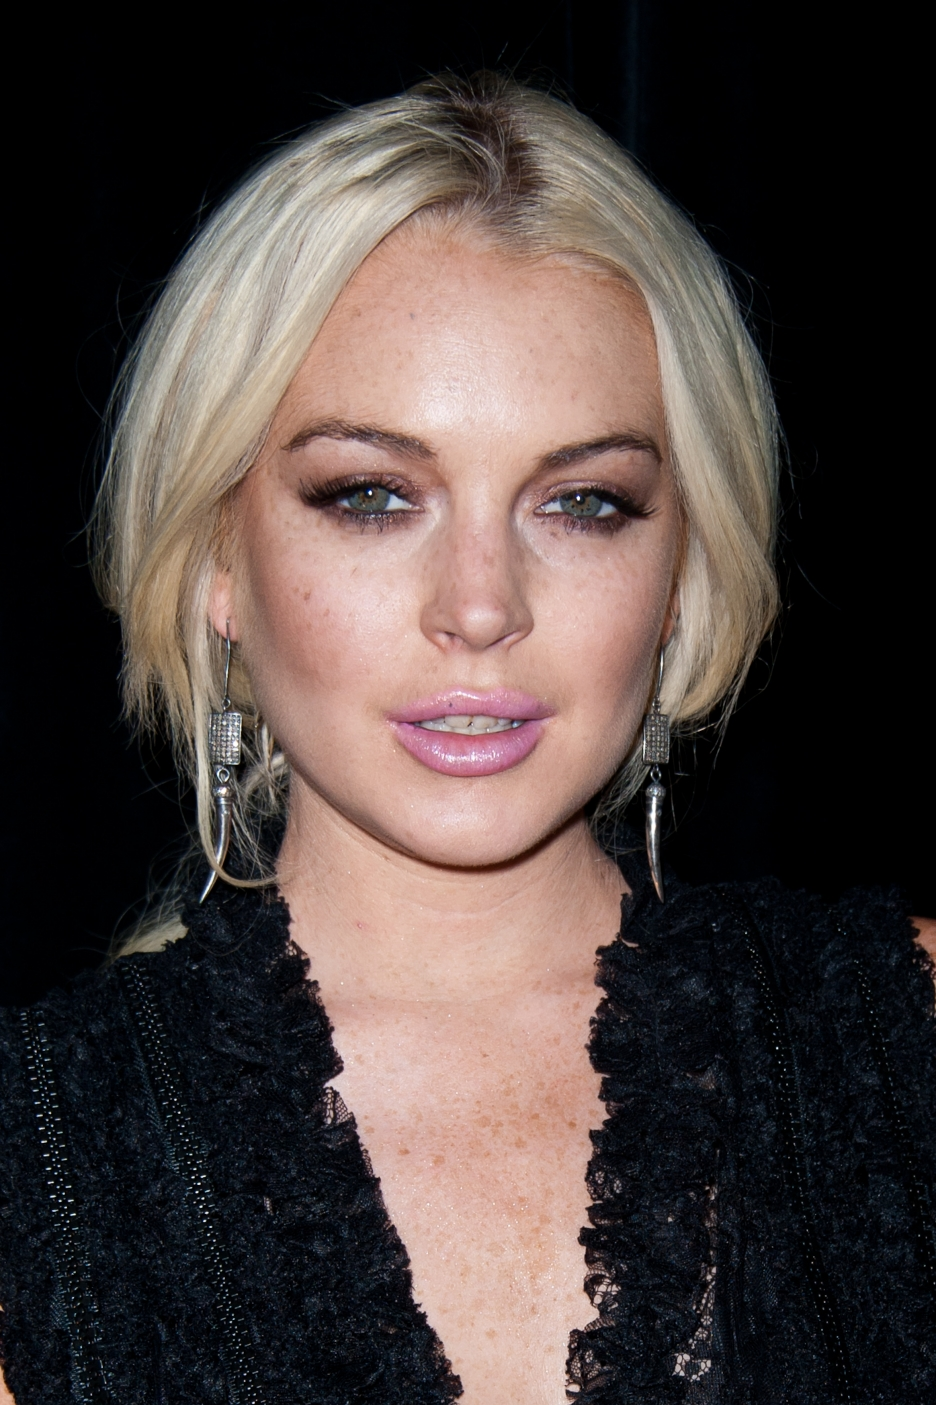 All lindsay lohan pictures